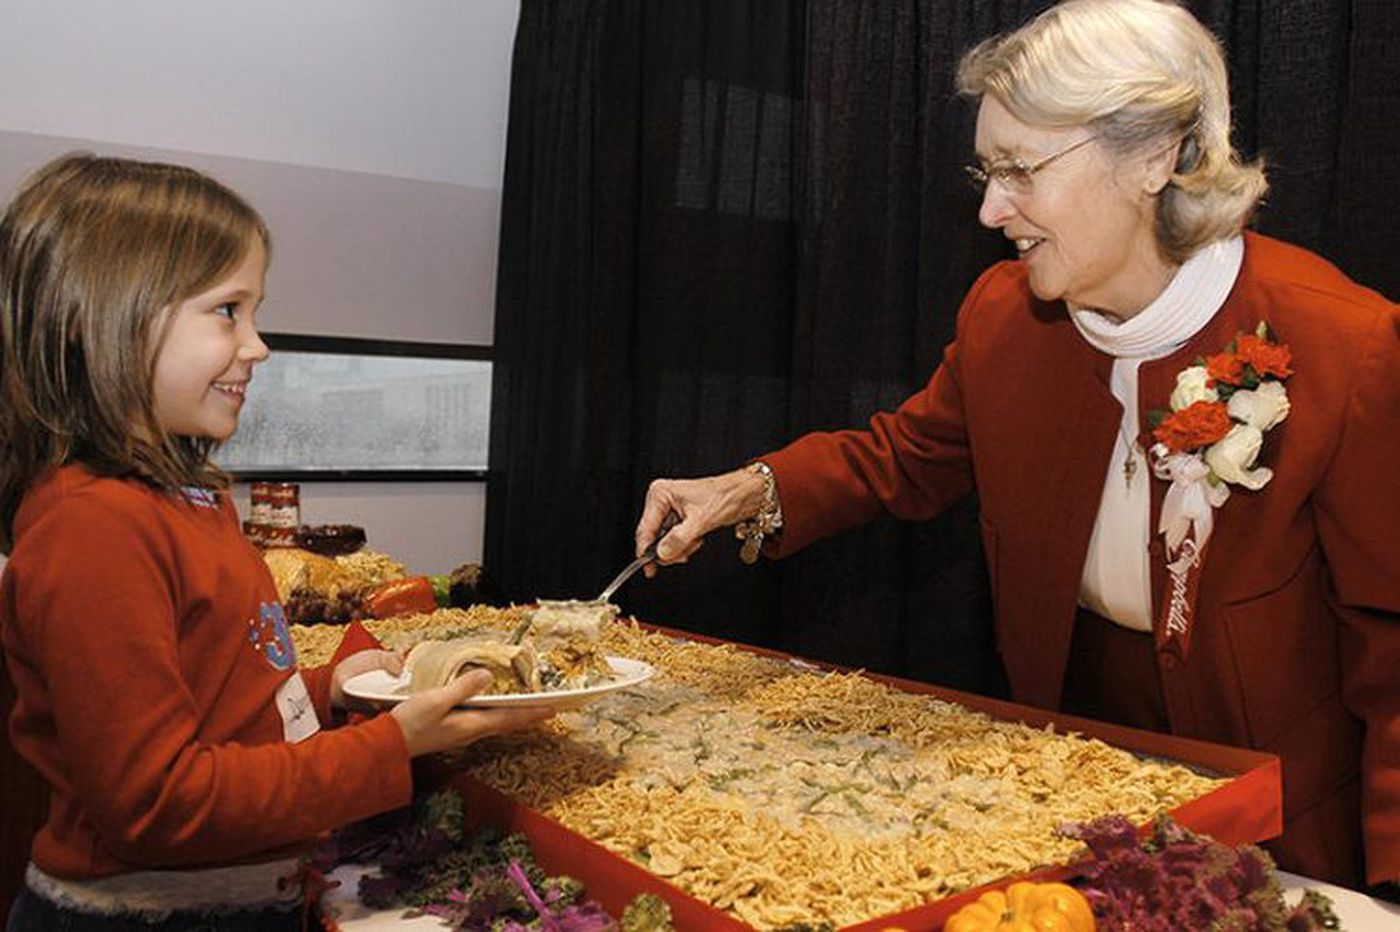 Dorcas Reilly, whose iconic green bean casserole dish graces millions of Thanksgiving tables each year, dies at 92